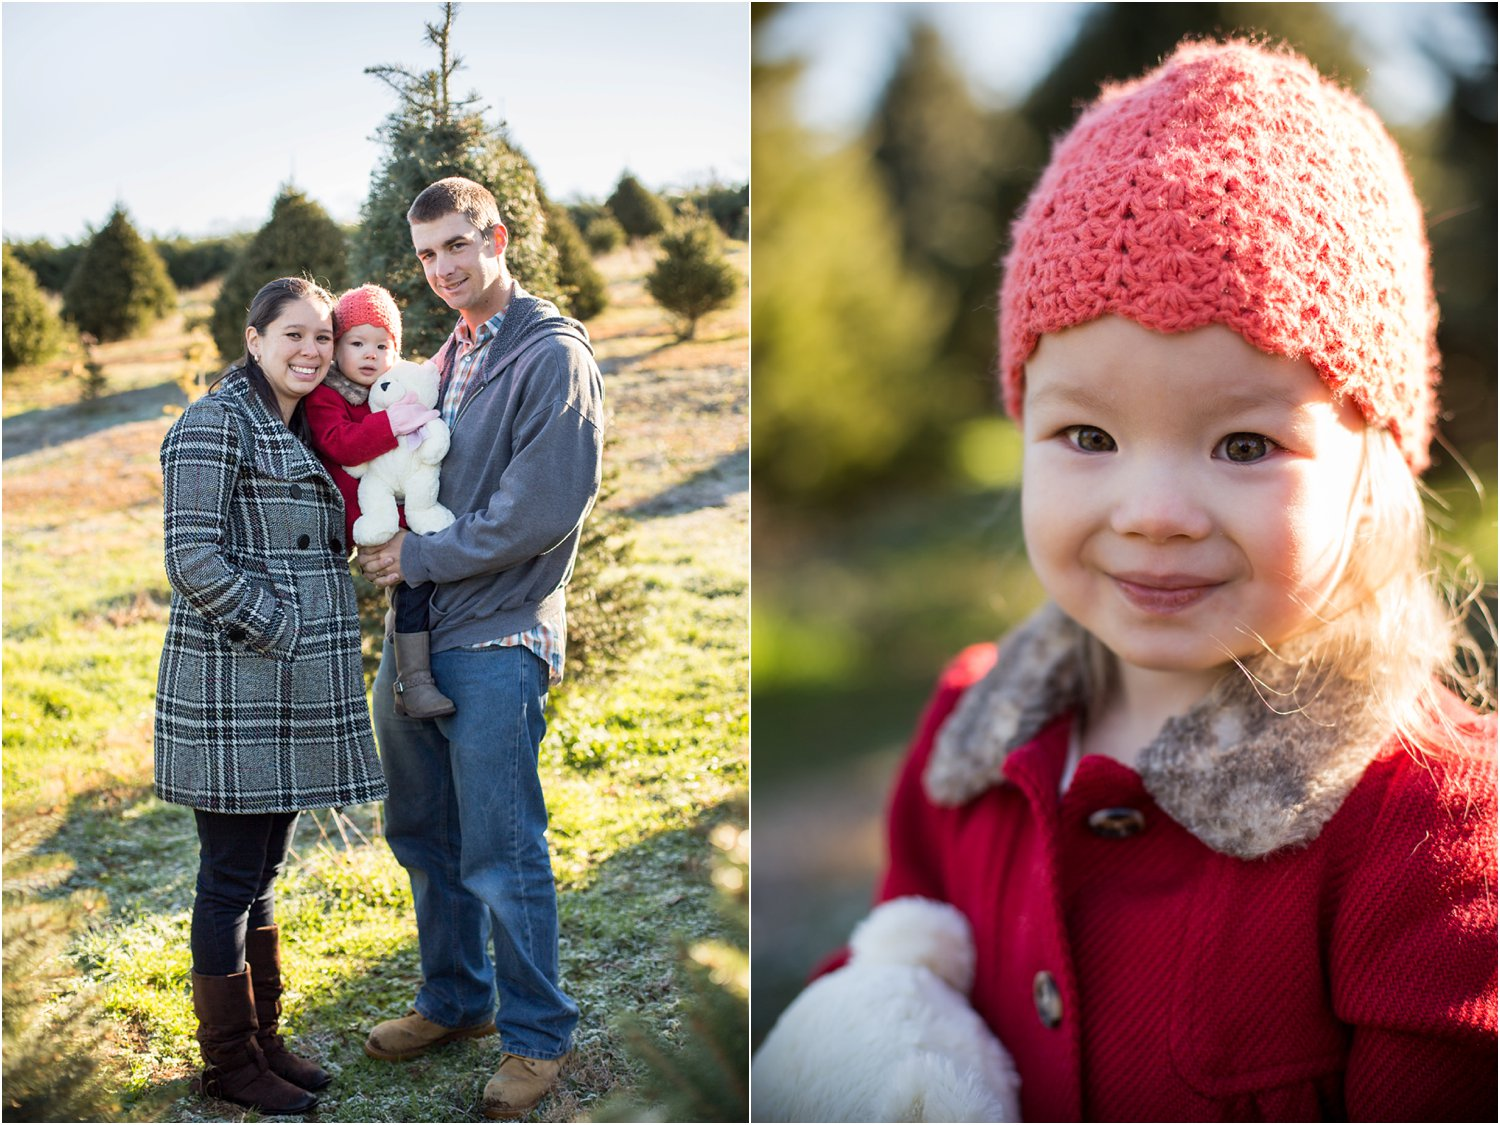 Moose_Apple_Chrismas_Tree_Farm_Family_Portraits_0003.jpg